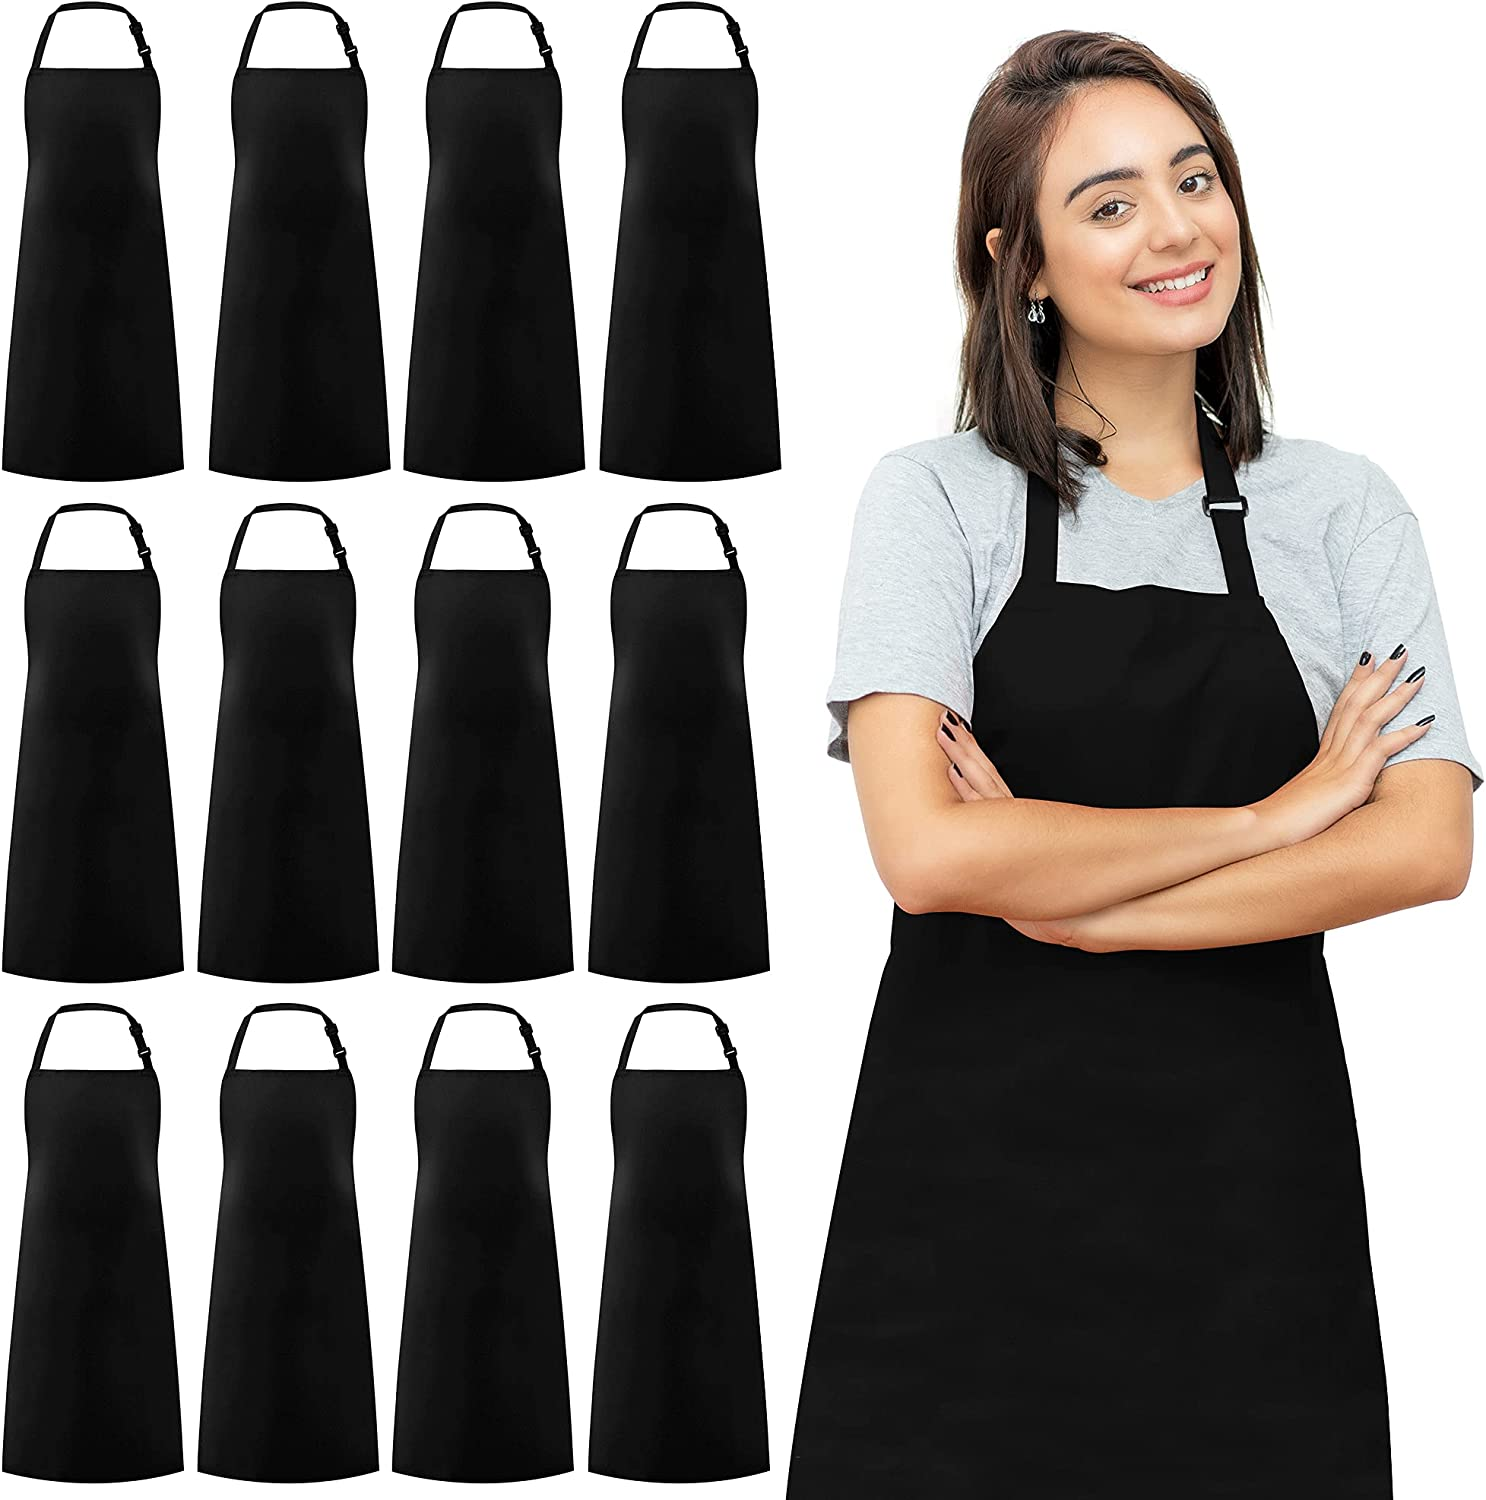 Syntus 12 Pack Adjustable Bib Apron Waterdorp Resistant Cooking Kitchen Aprons for BBQ Drawing DIY Aprons for Women Men Chef, Black